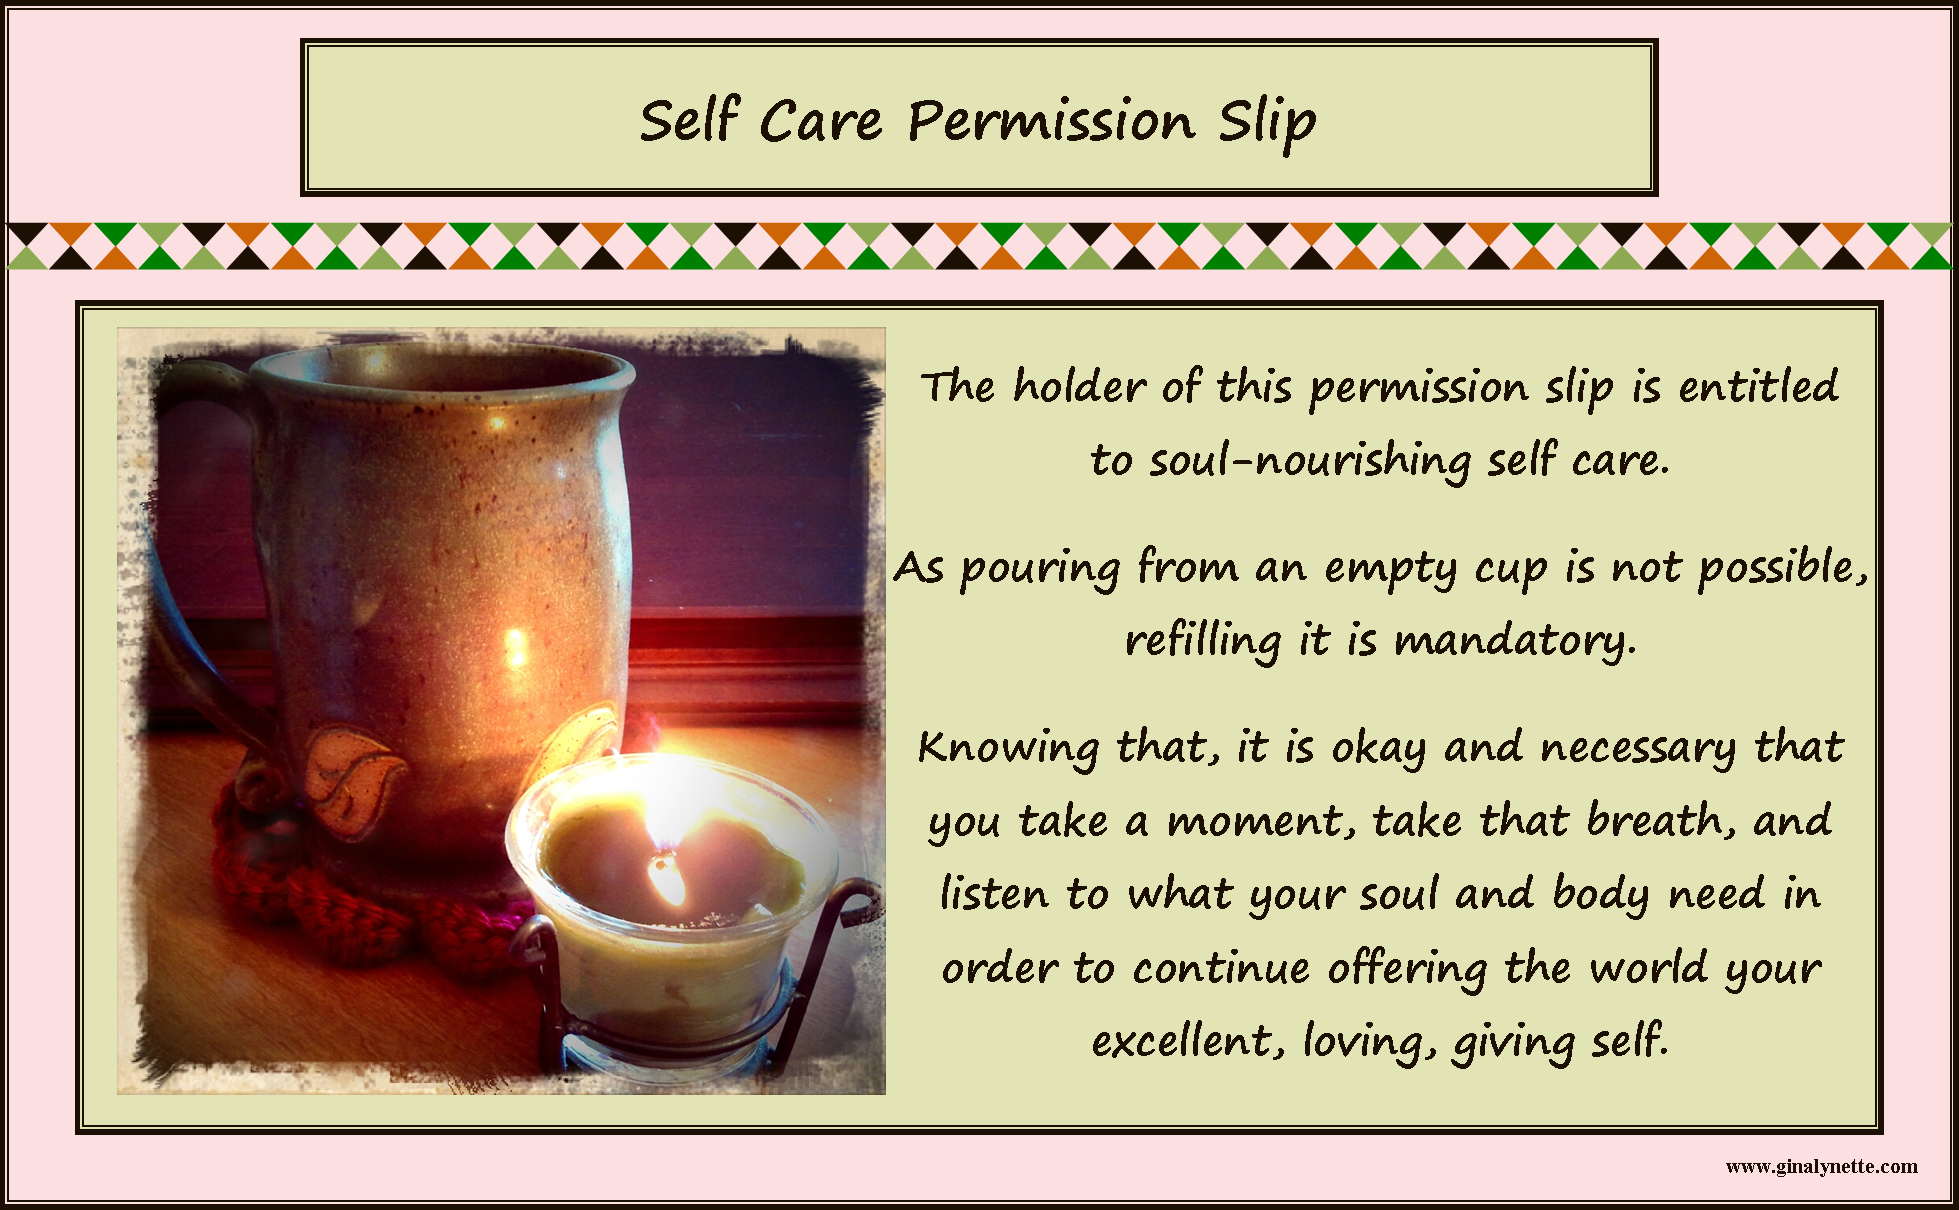 Self Care Permission Slip